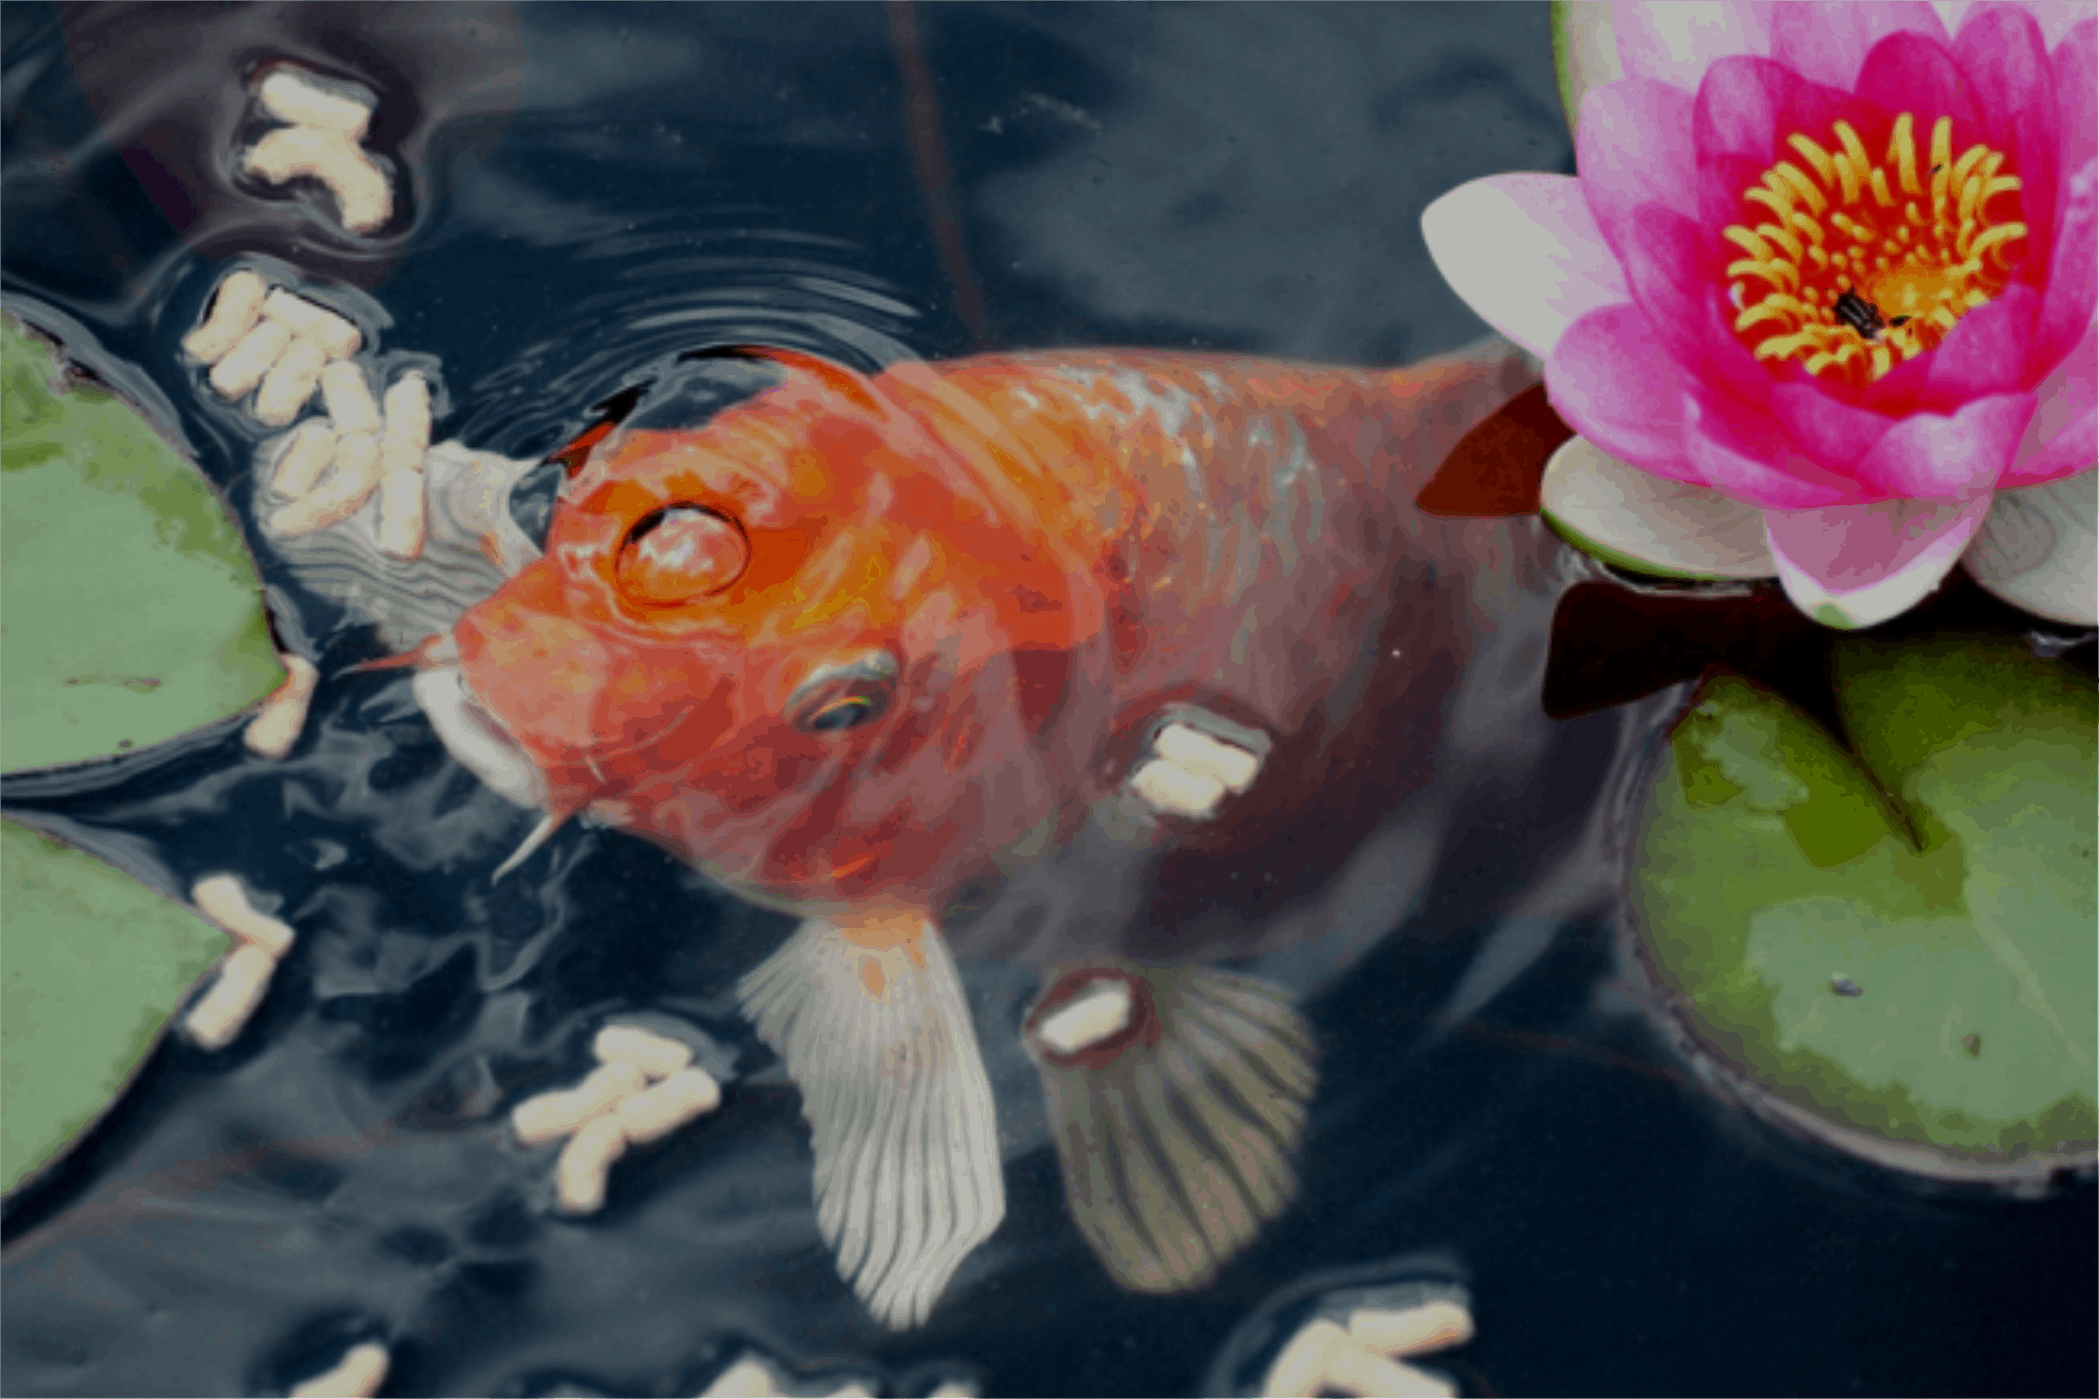 koi fish surfacing next to water lily